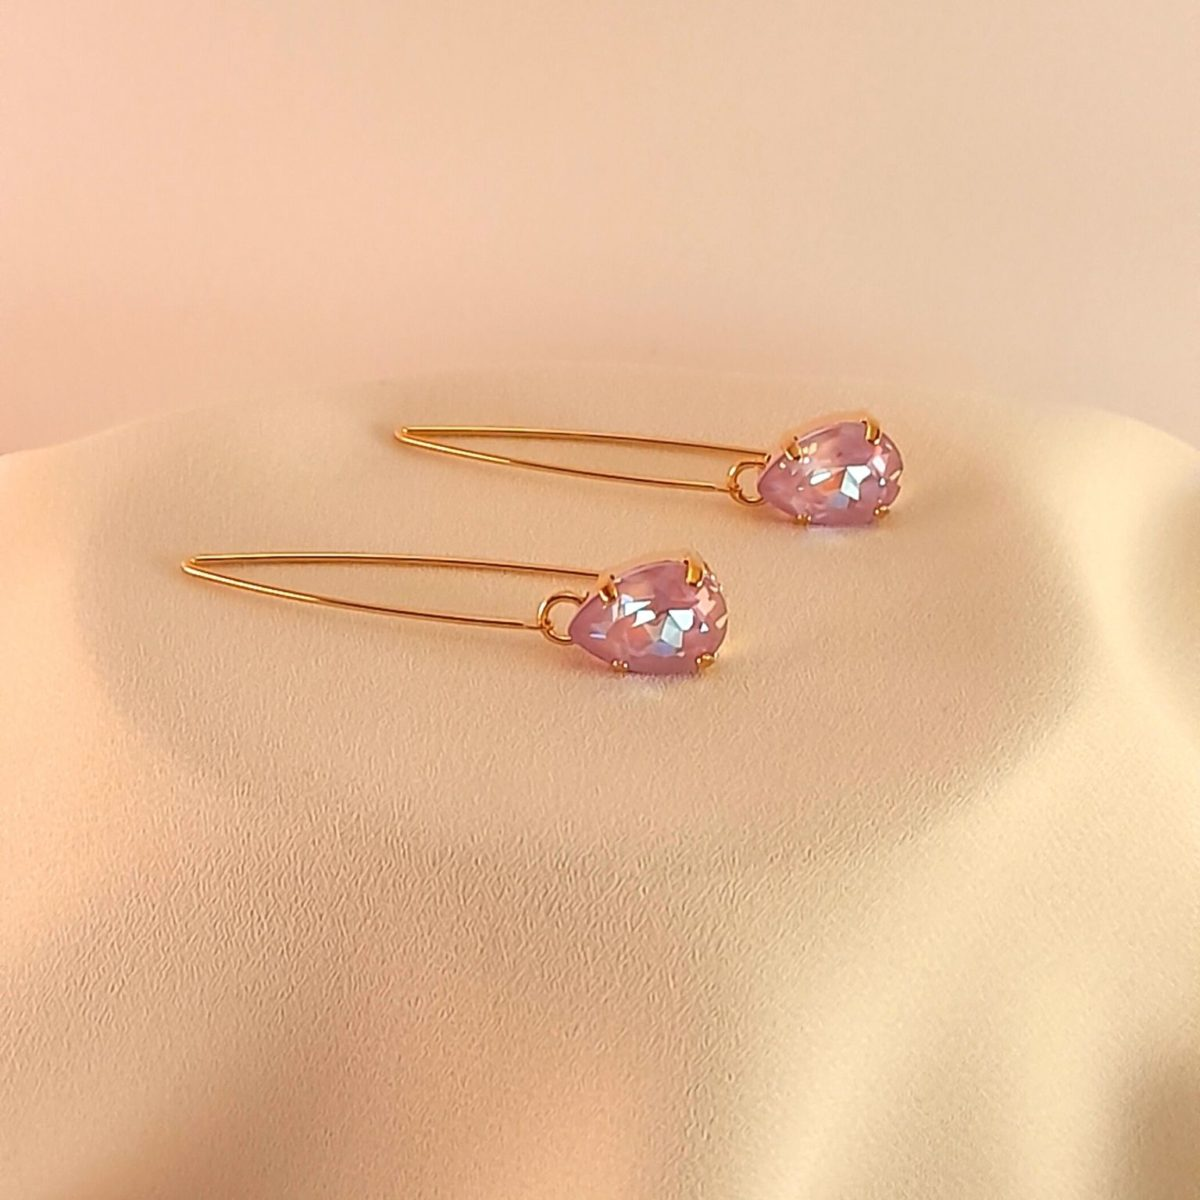 Long Earrings With A Lilac Stone